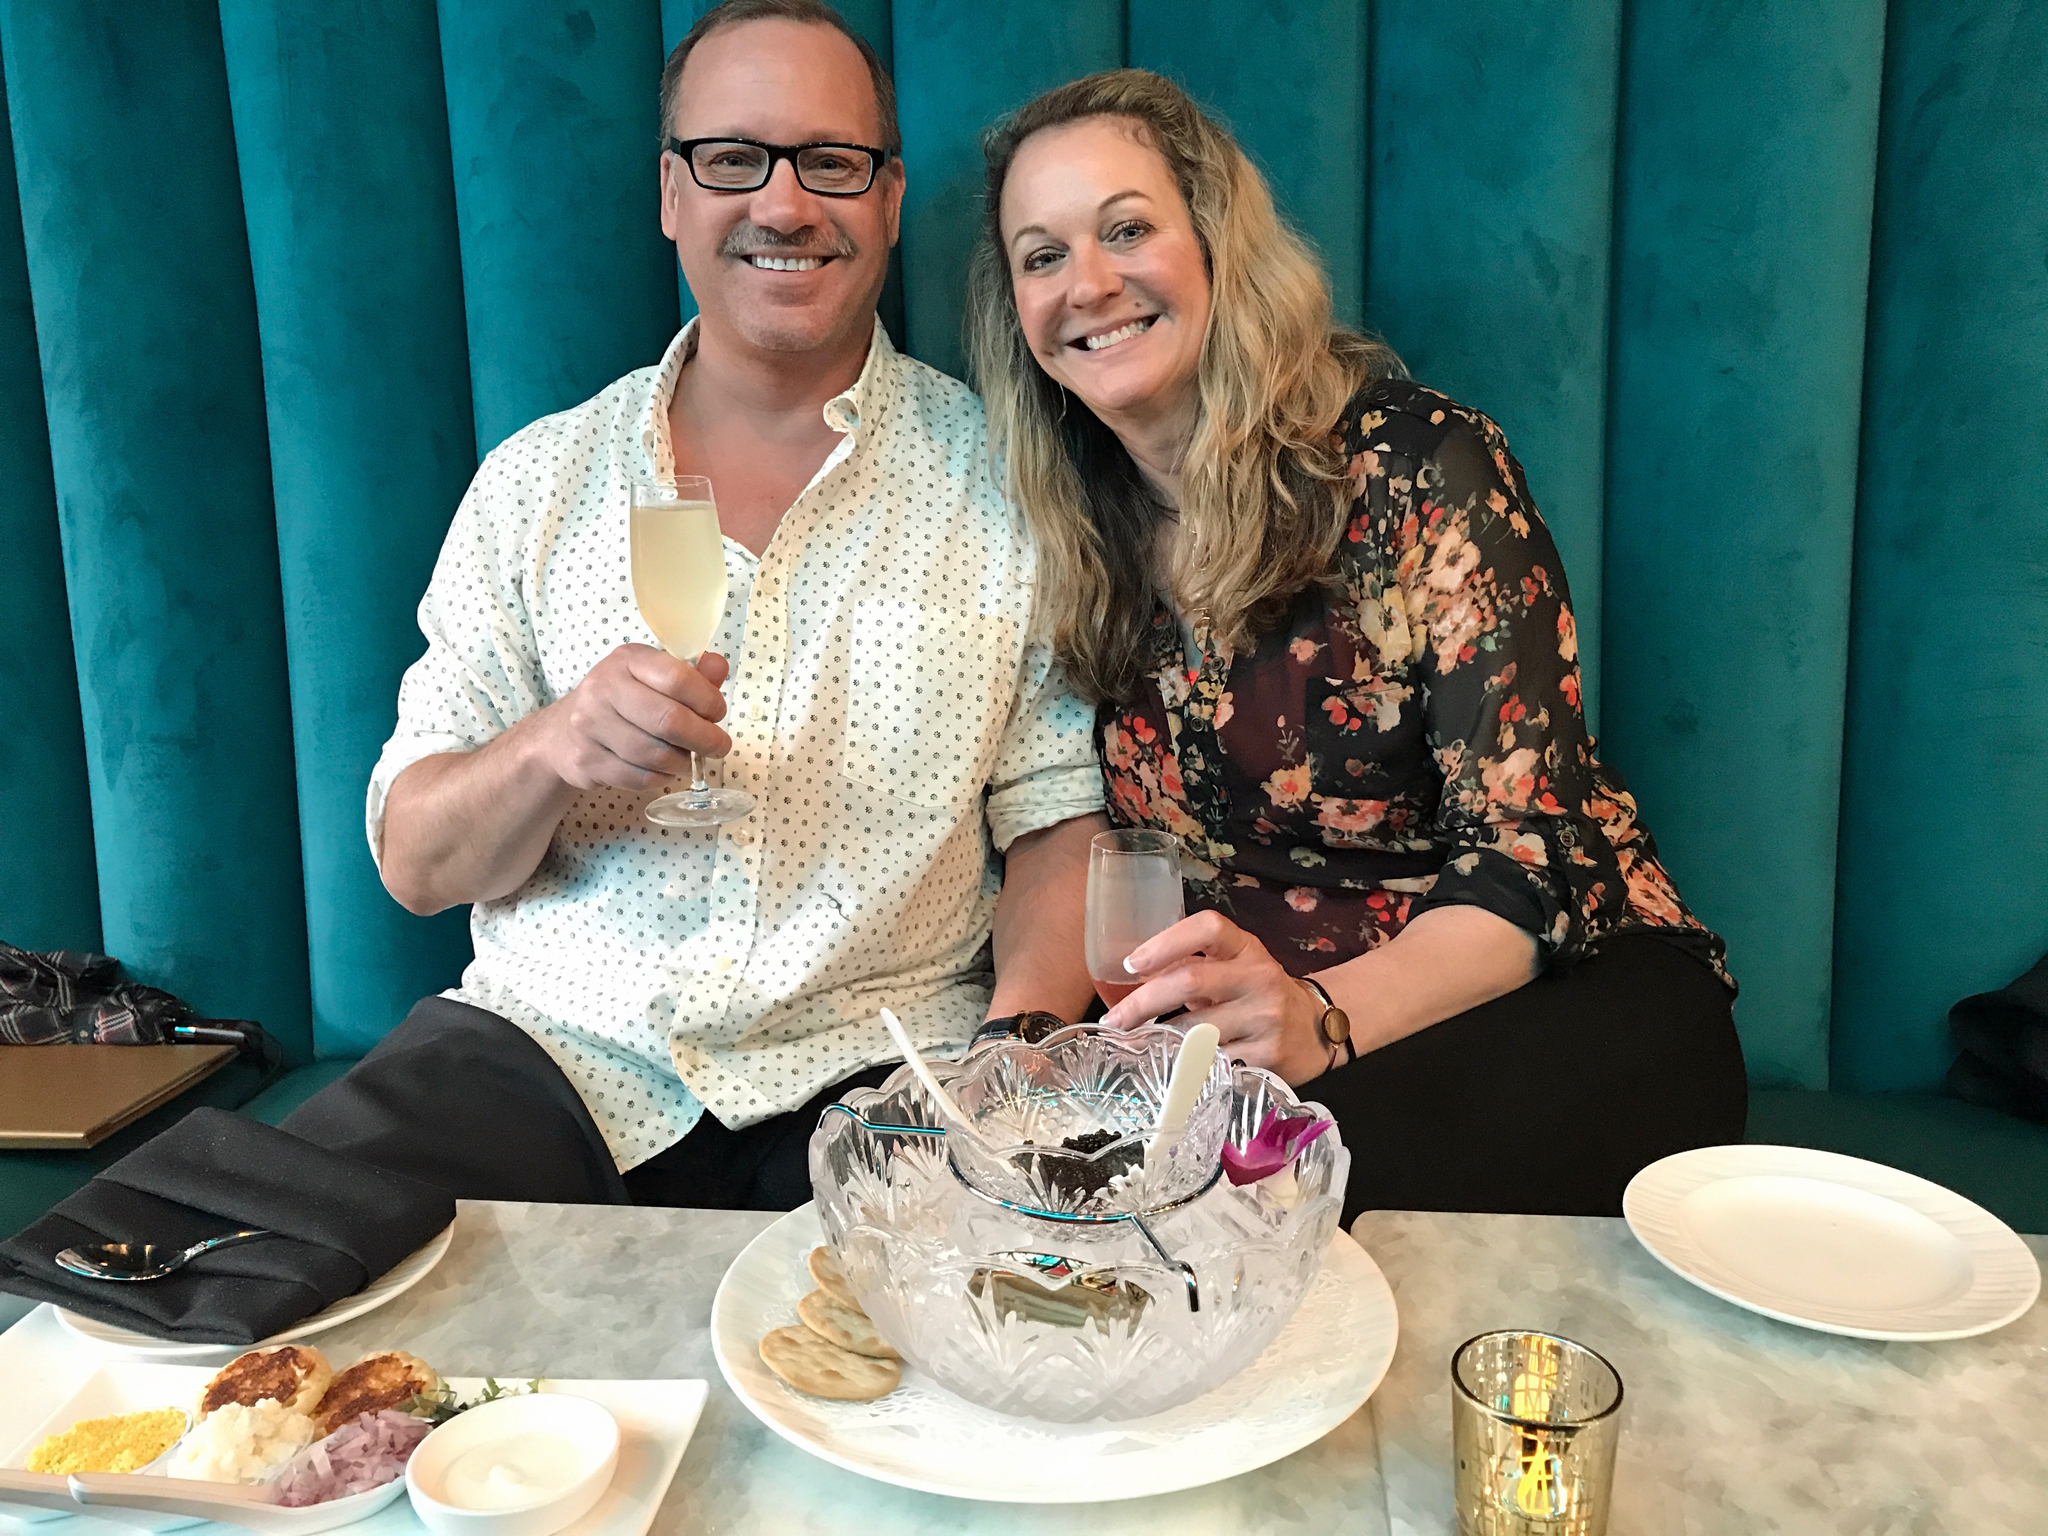 St. Pete Foodies - Kevin Godbee & Lori Brown